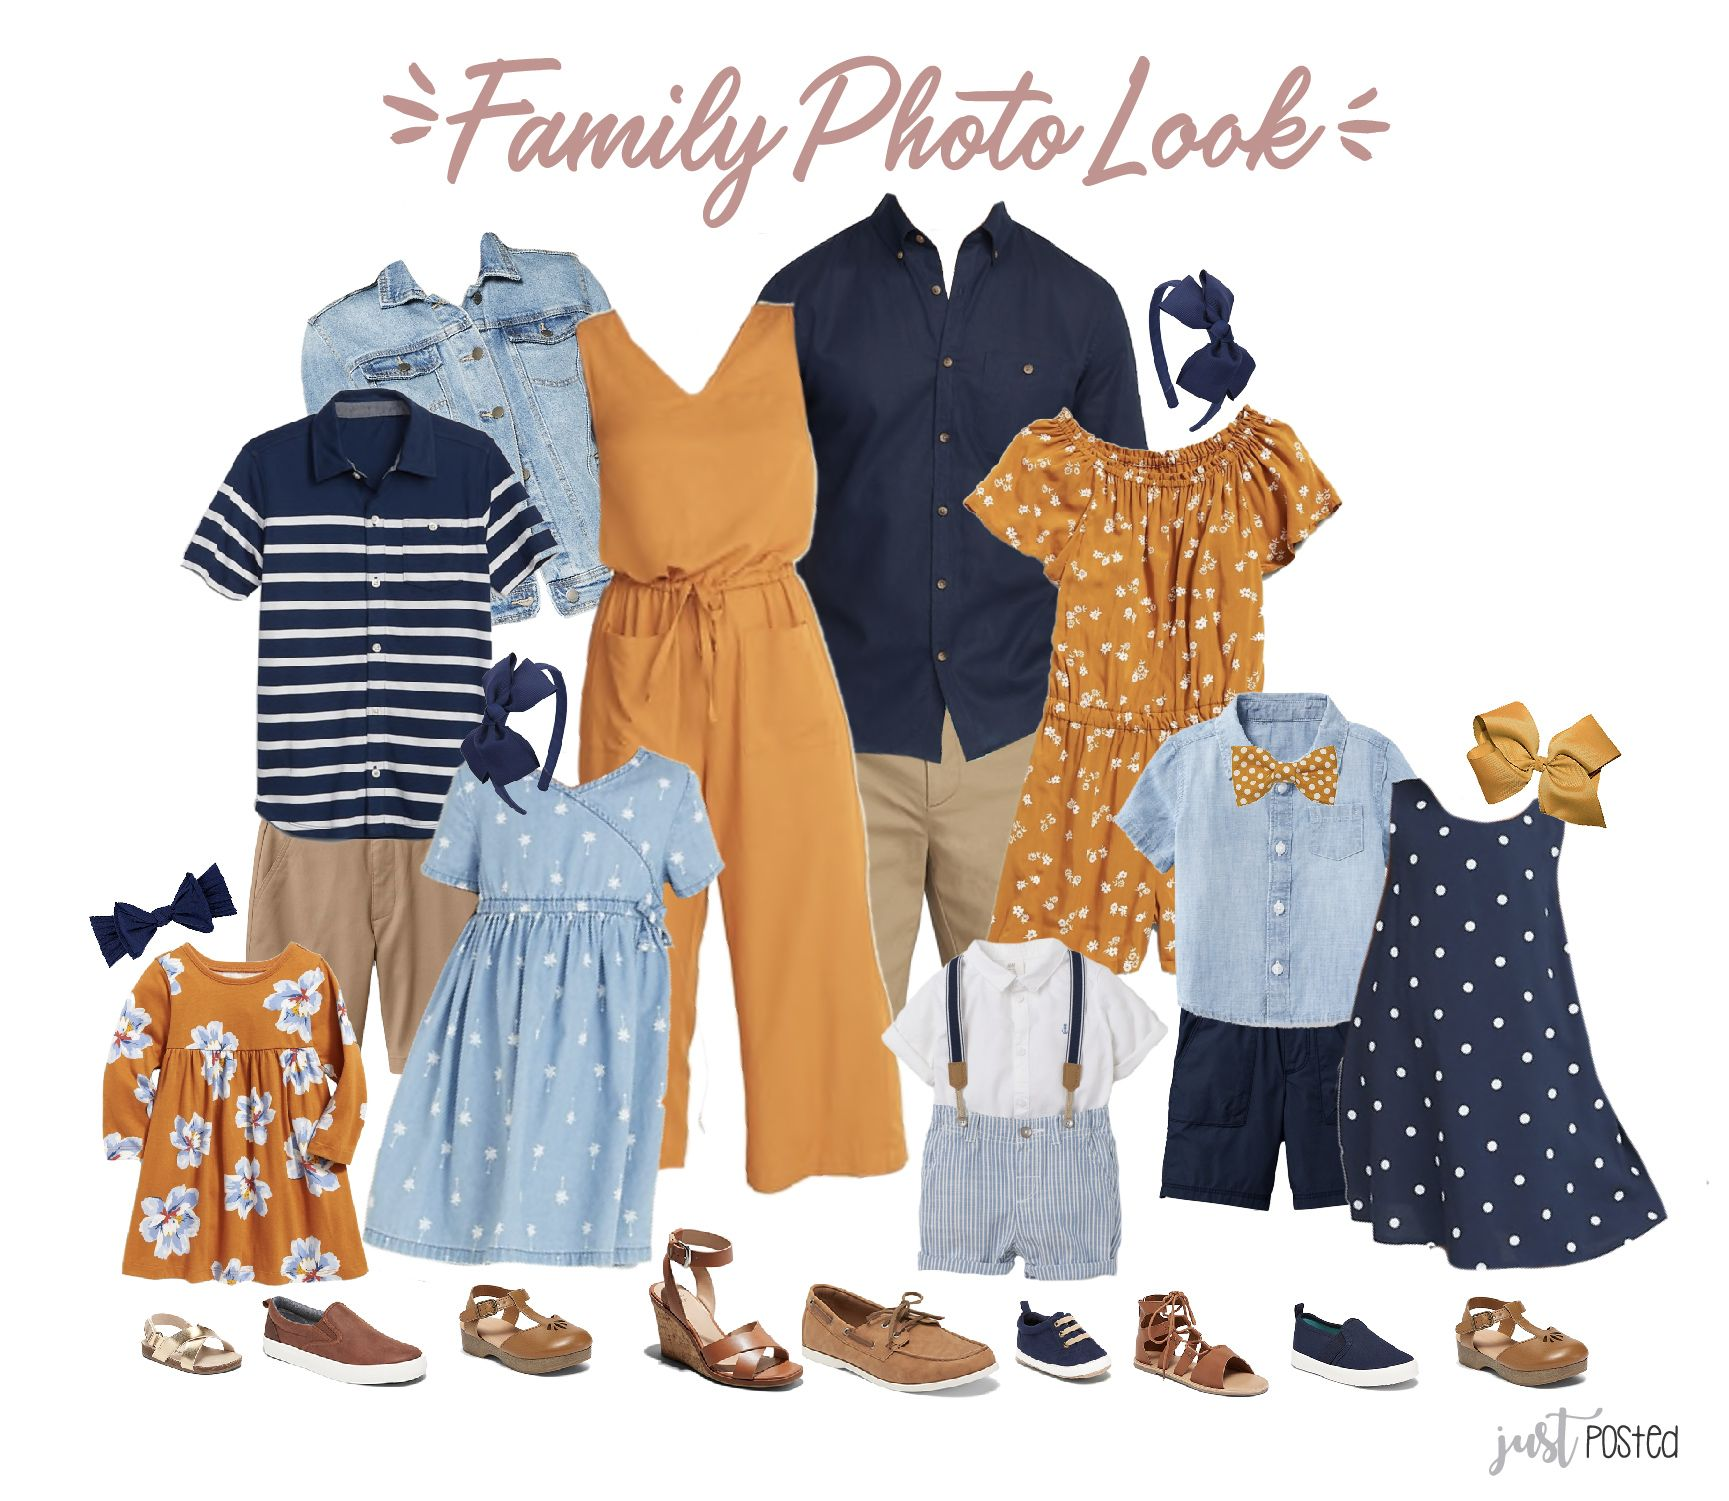 What to Wear for Family Pictures - 4 Coordinating Looks